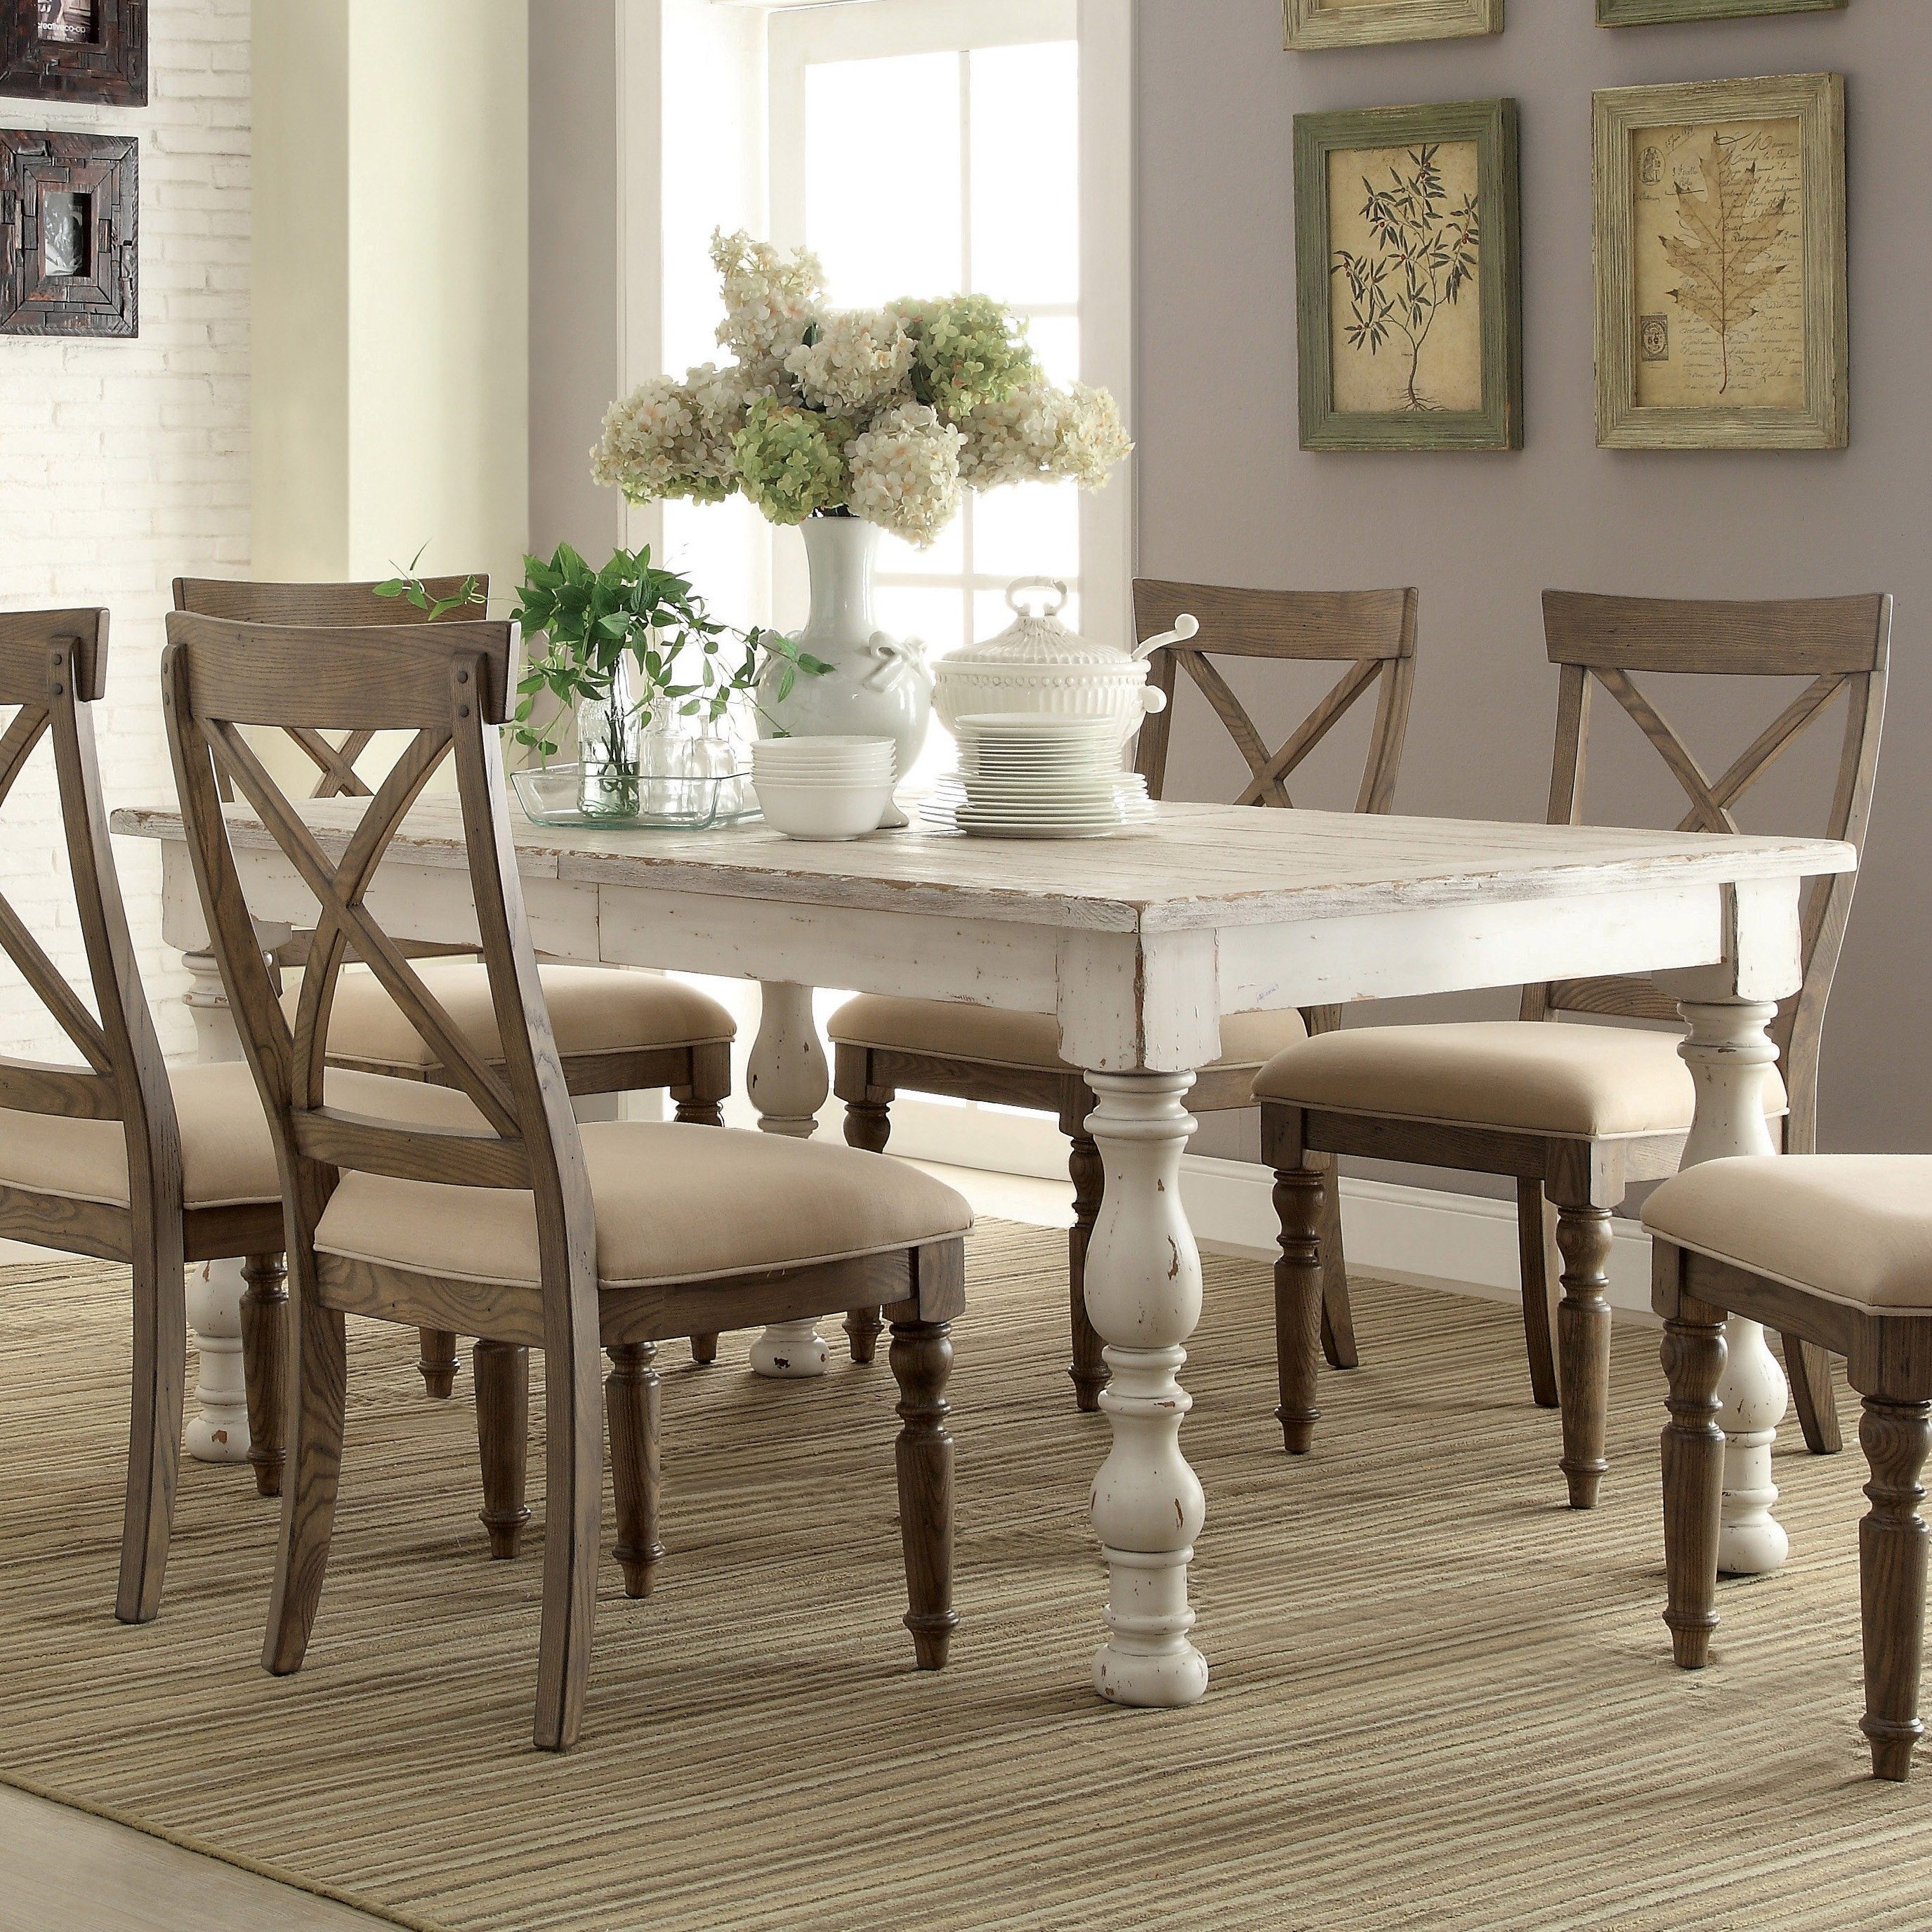 Dining Table Chairs Set Cheap aberdeen wood rectangular dining table only in weathered worn white